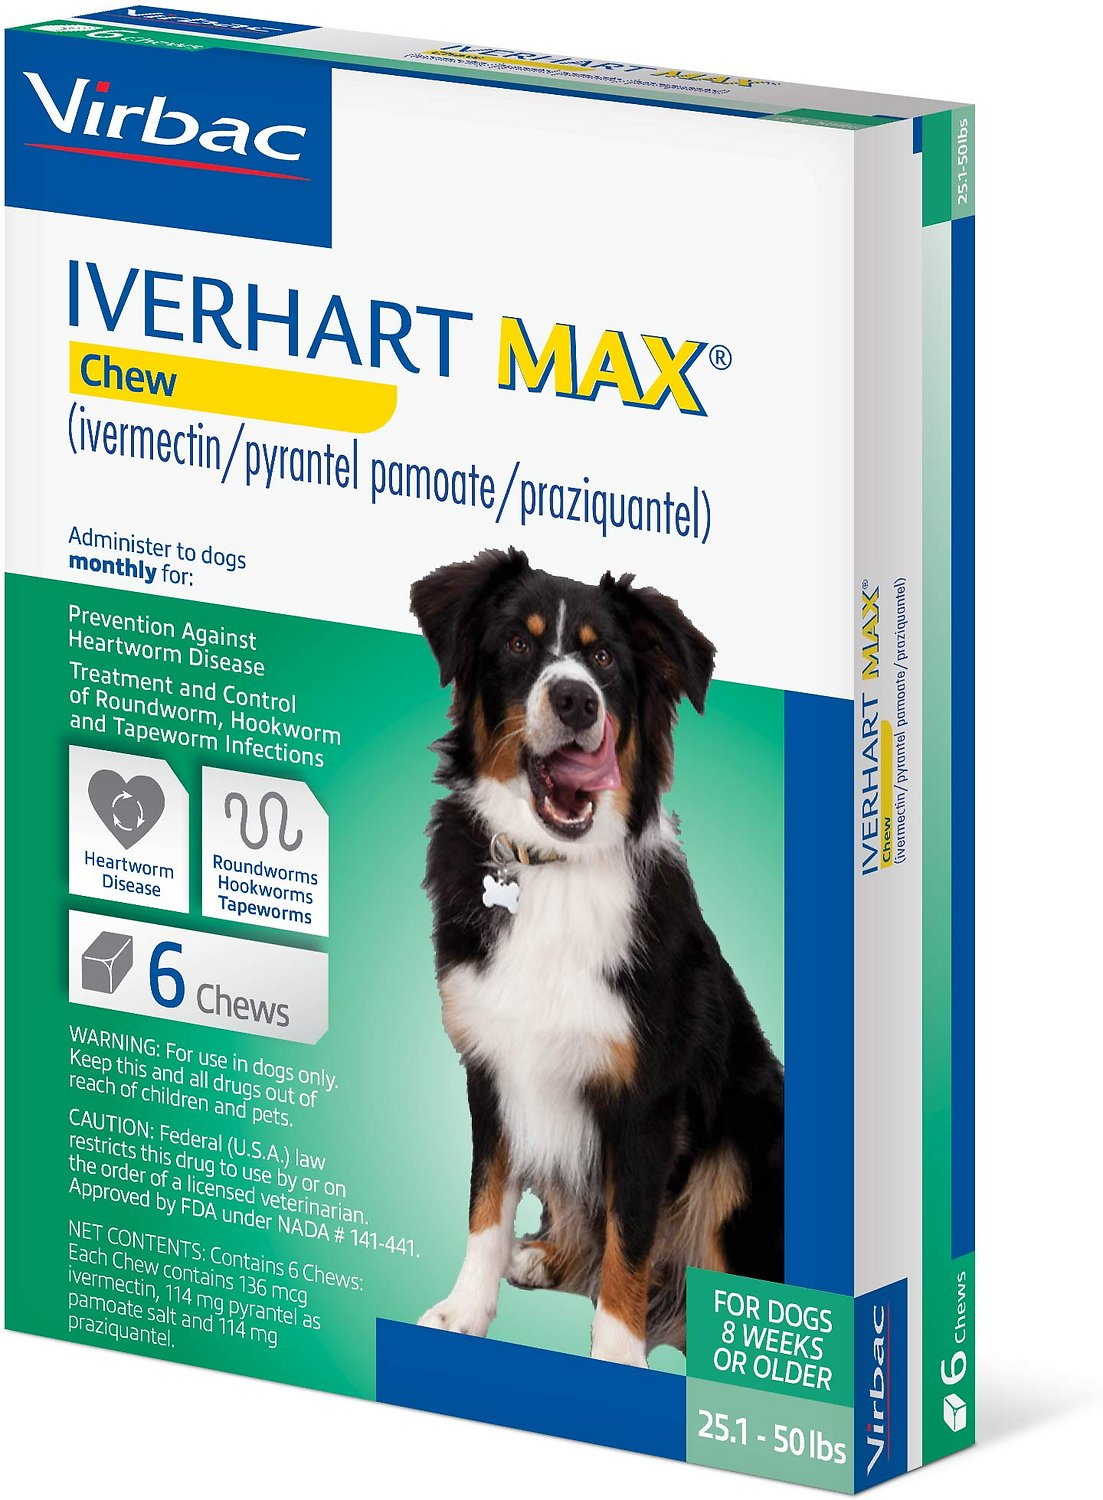 Iverhart Max Soft Chew 25 1-50lbs, 6 treatments